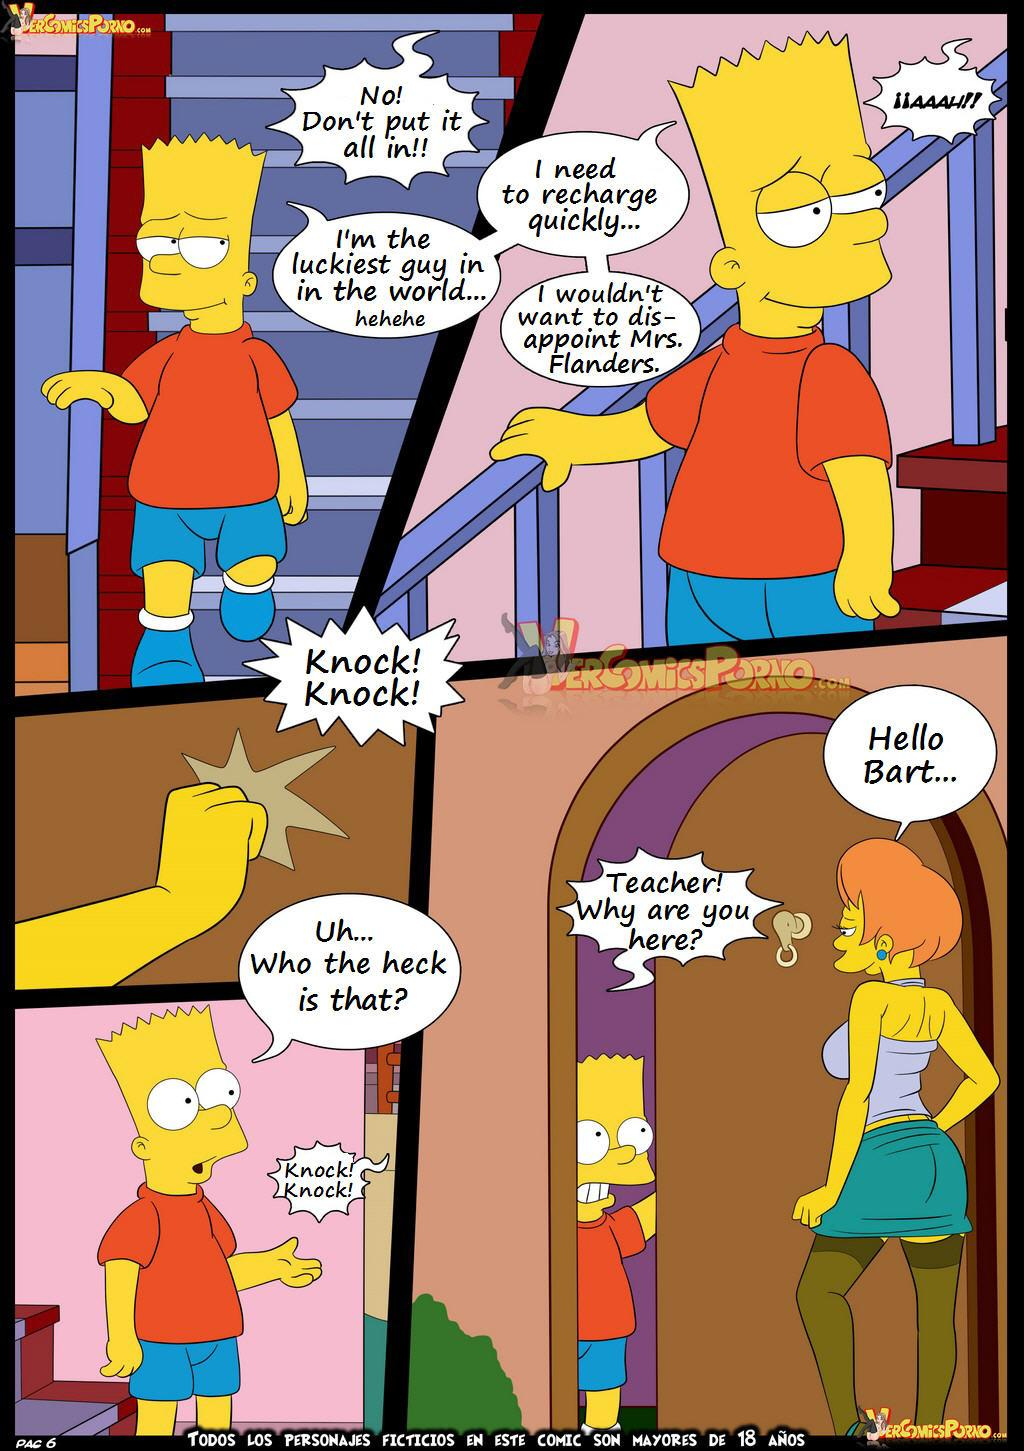 7 44 - The Simpsons. Part 5.